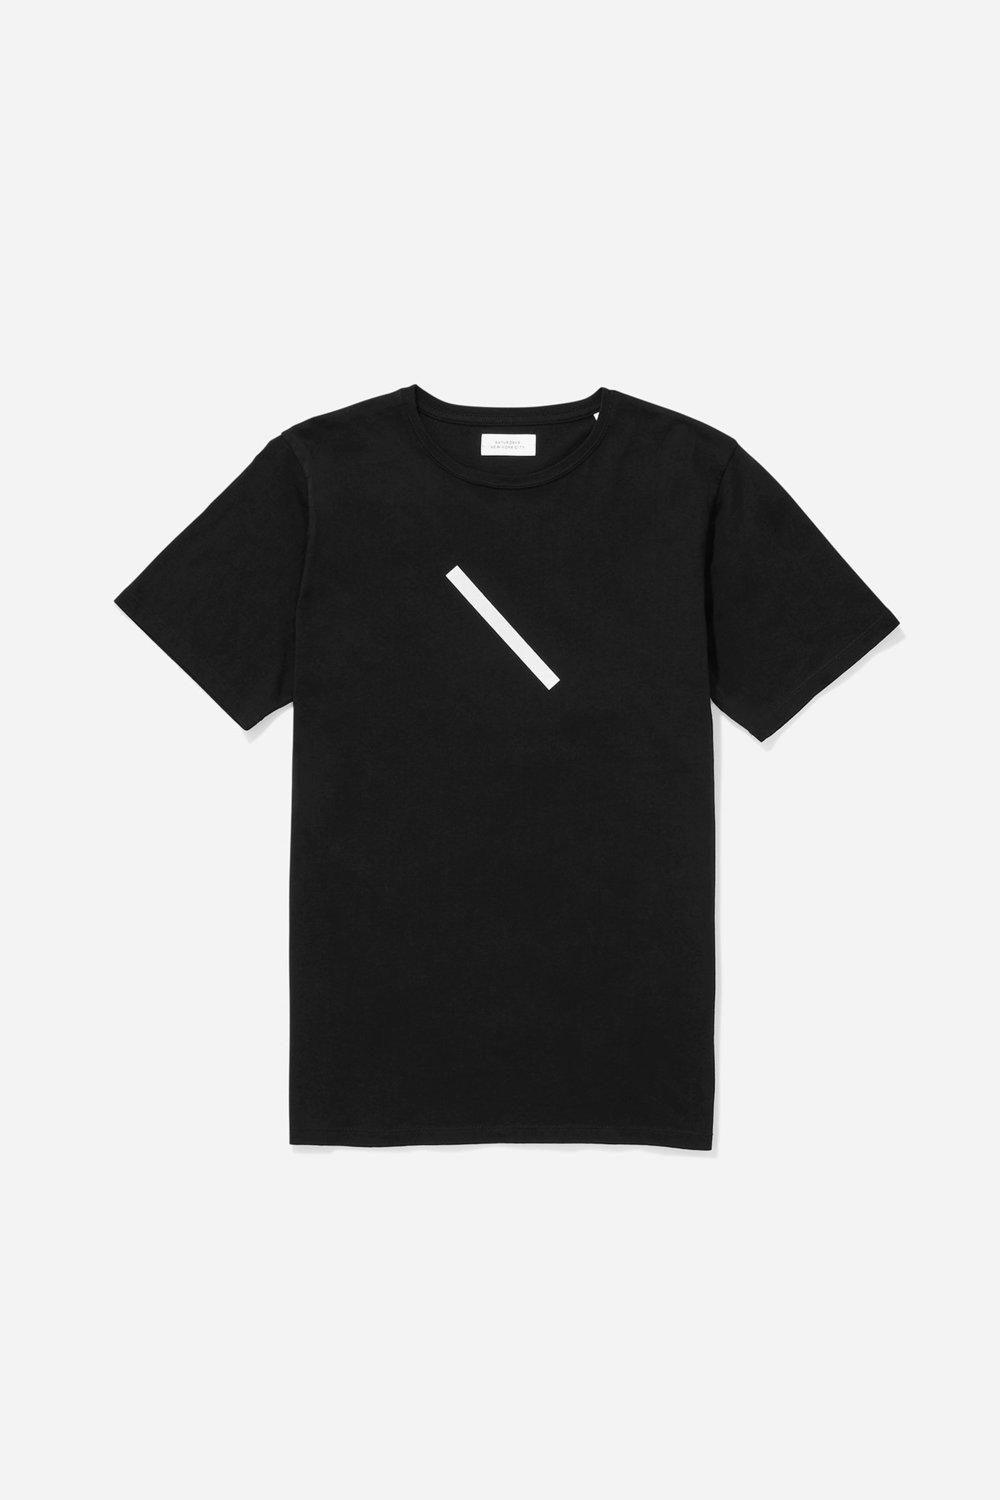 Saturdays NYC slash t-shirt- black.jpg